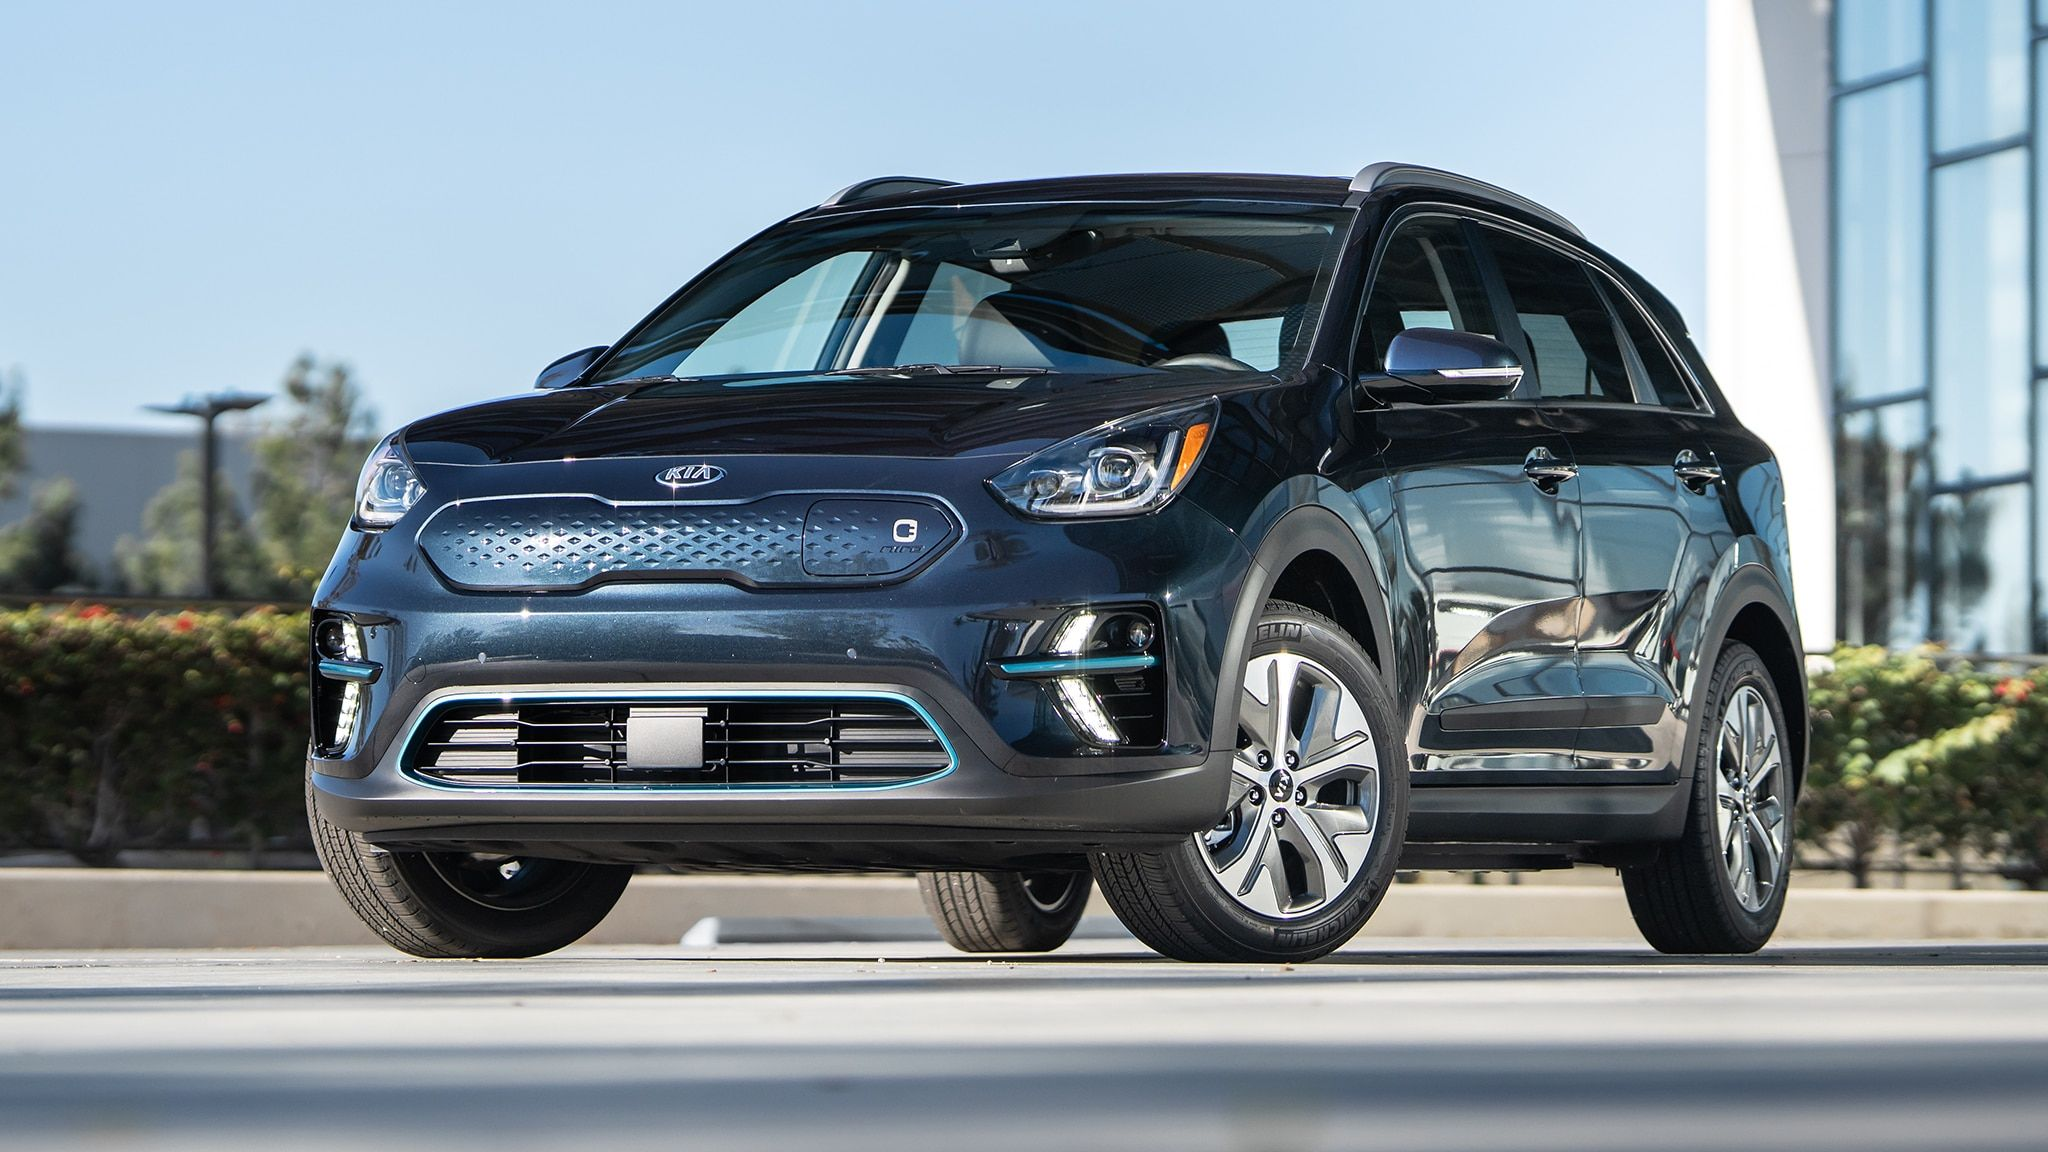 2019 Kia Niro Ev Has Asked You To Pay For A Light Premium After Being The First Borrower Of Last November The 2019 Kia Niro Best Luxury Sports Cars Best